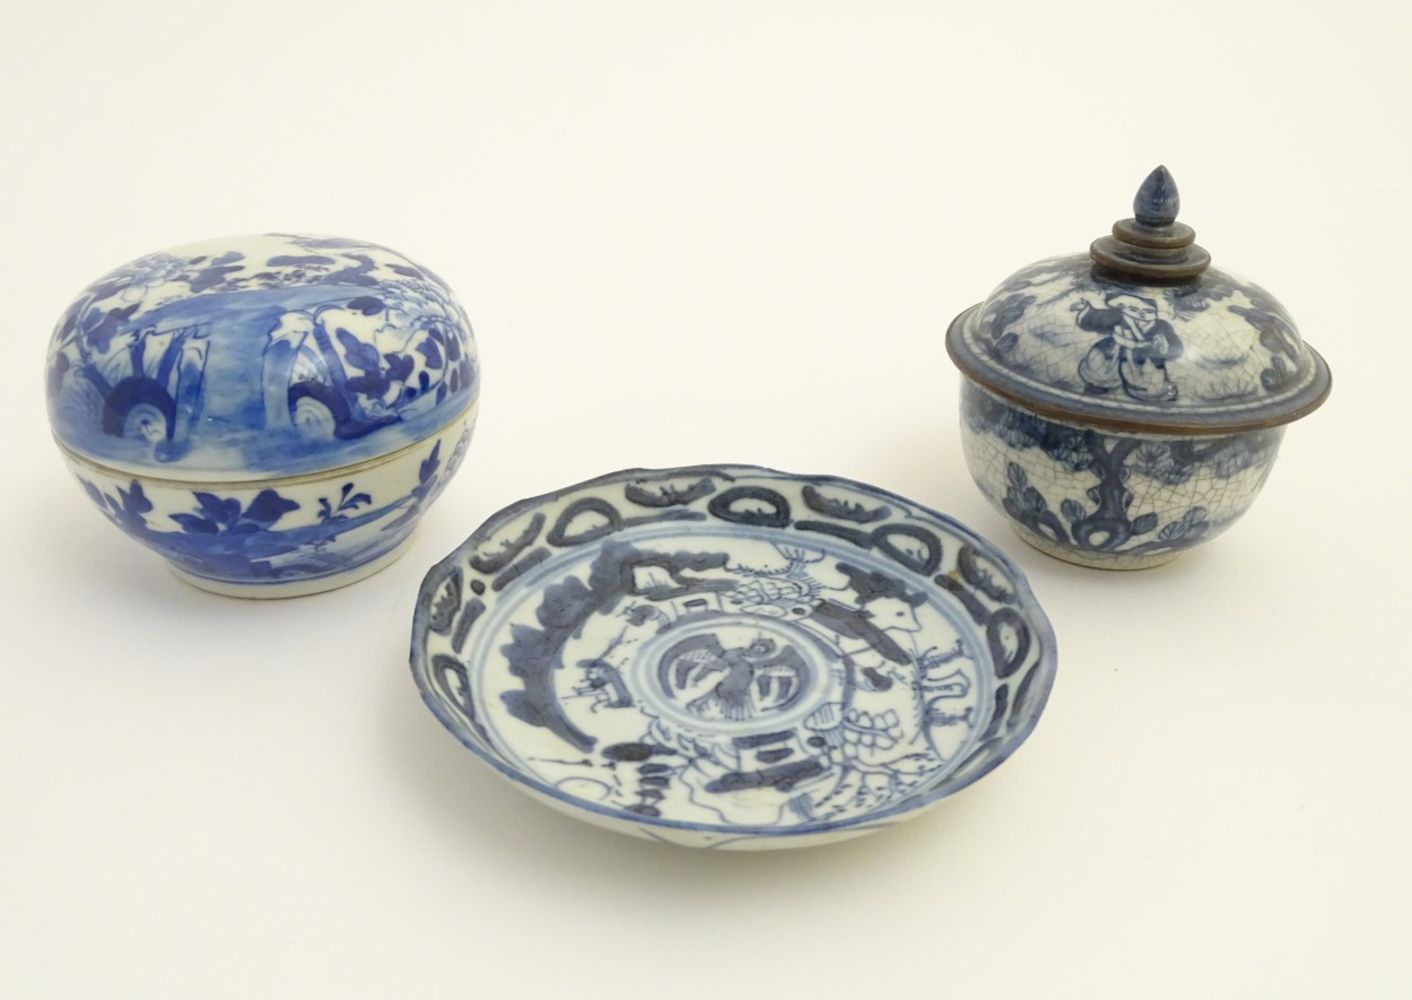 2-day Auction of  Antiques, Collectables, Paintings,  Prints & Decorative Items